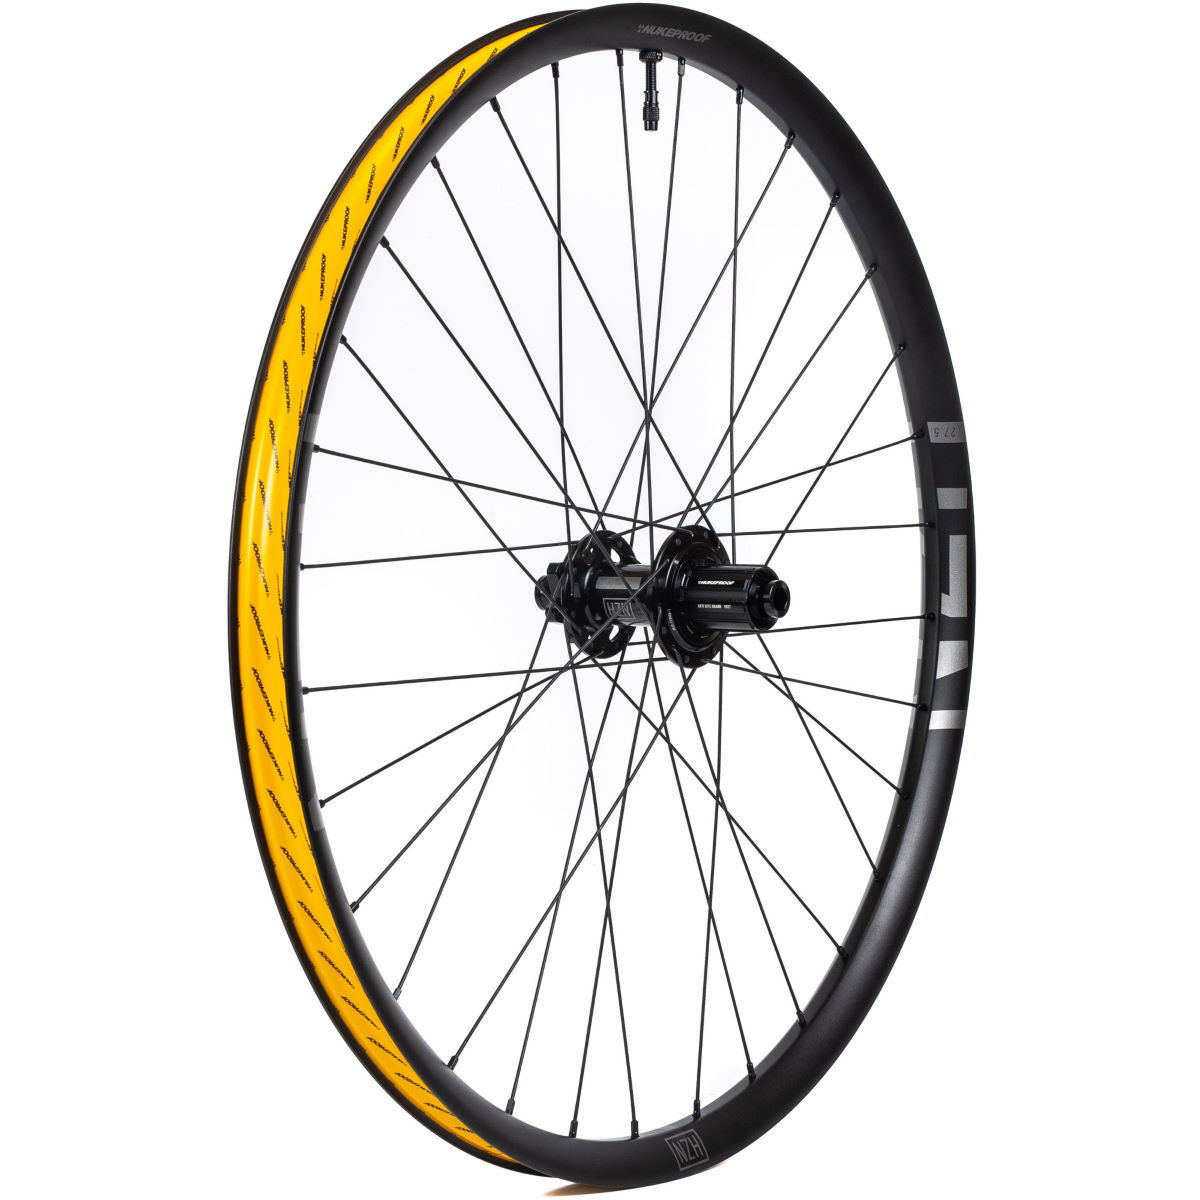 Nukeproof Nukeproof Horizon V2 Rear Wheel 102t   Back Wheels